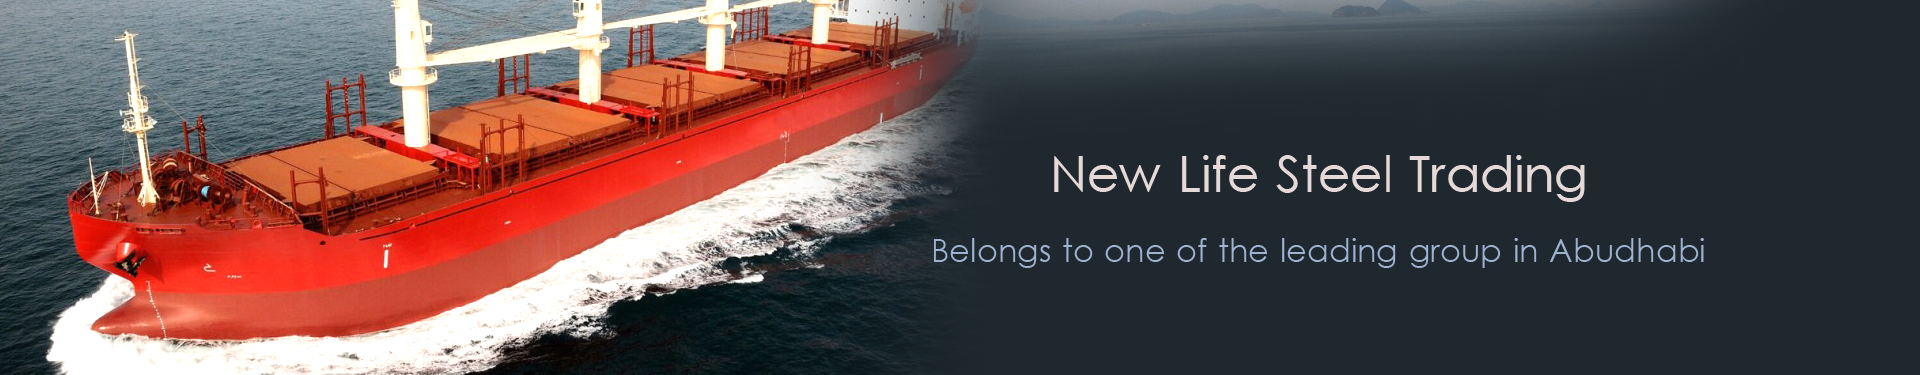 New Life Steel Trading. belongs to one of the leading group in Abudhabi